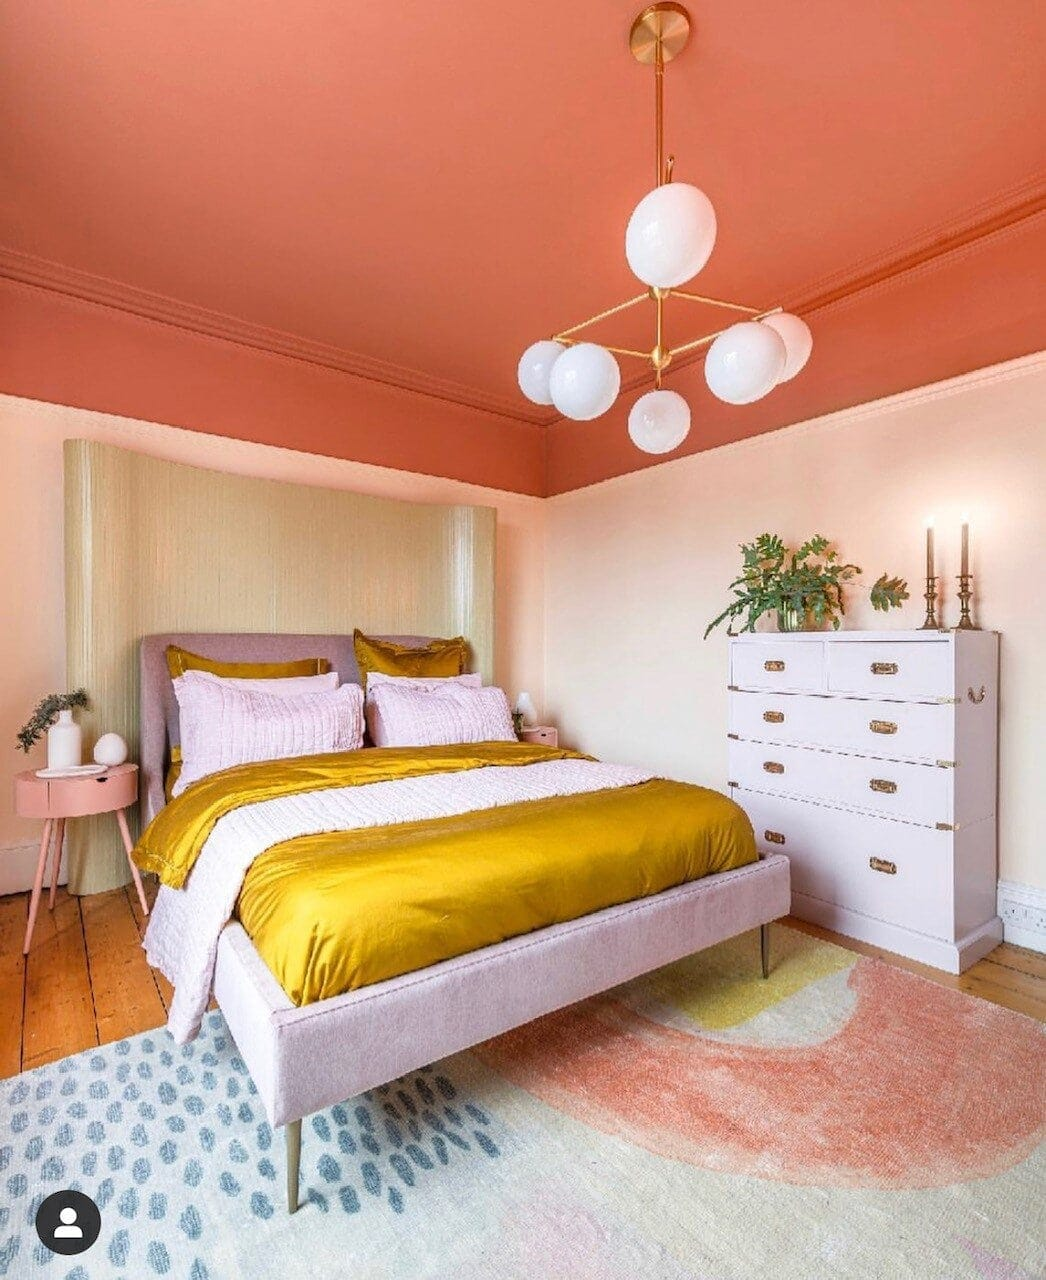 Sofie showing yet again how decorated ceilings should be done! Image:  @threeboysandapinkbath